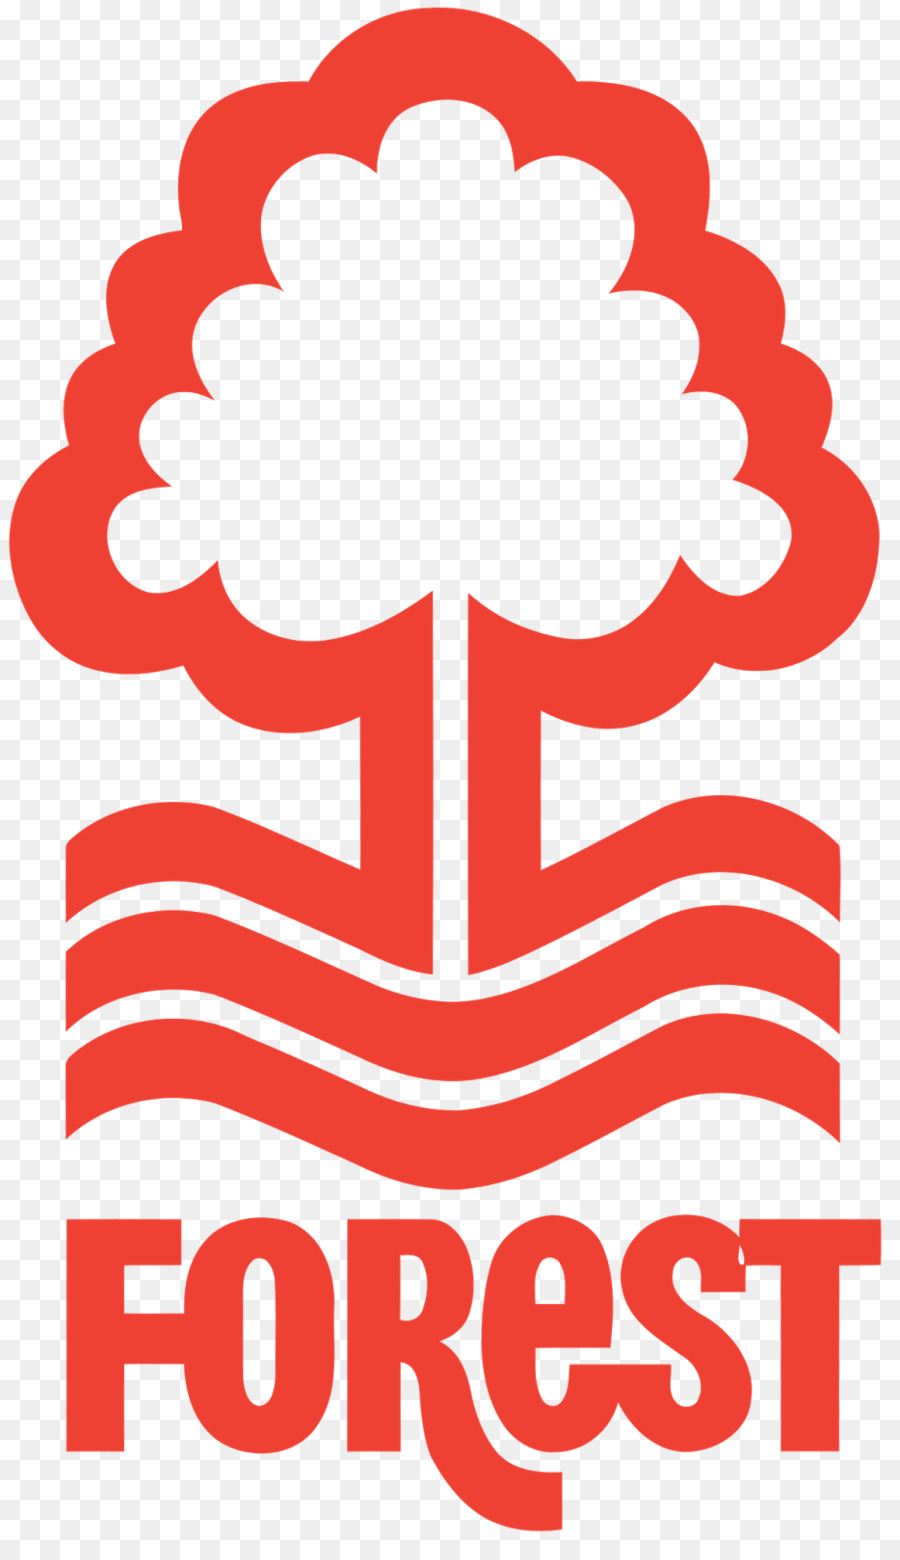 Nottingham forest badge clipart jpg royalty free download Forest Background png download - 934*1600 - Free Transparent ... jpg royalty free download